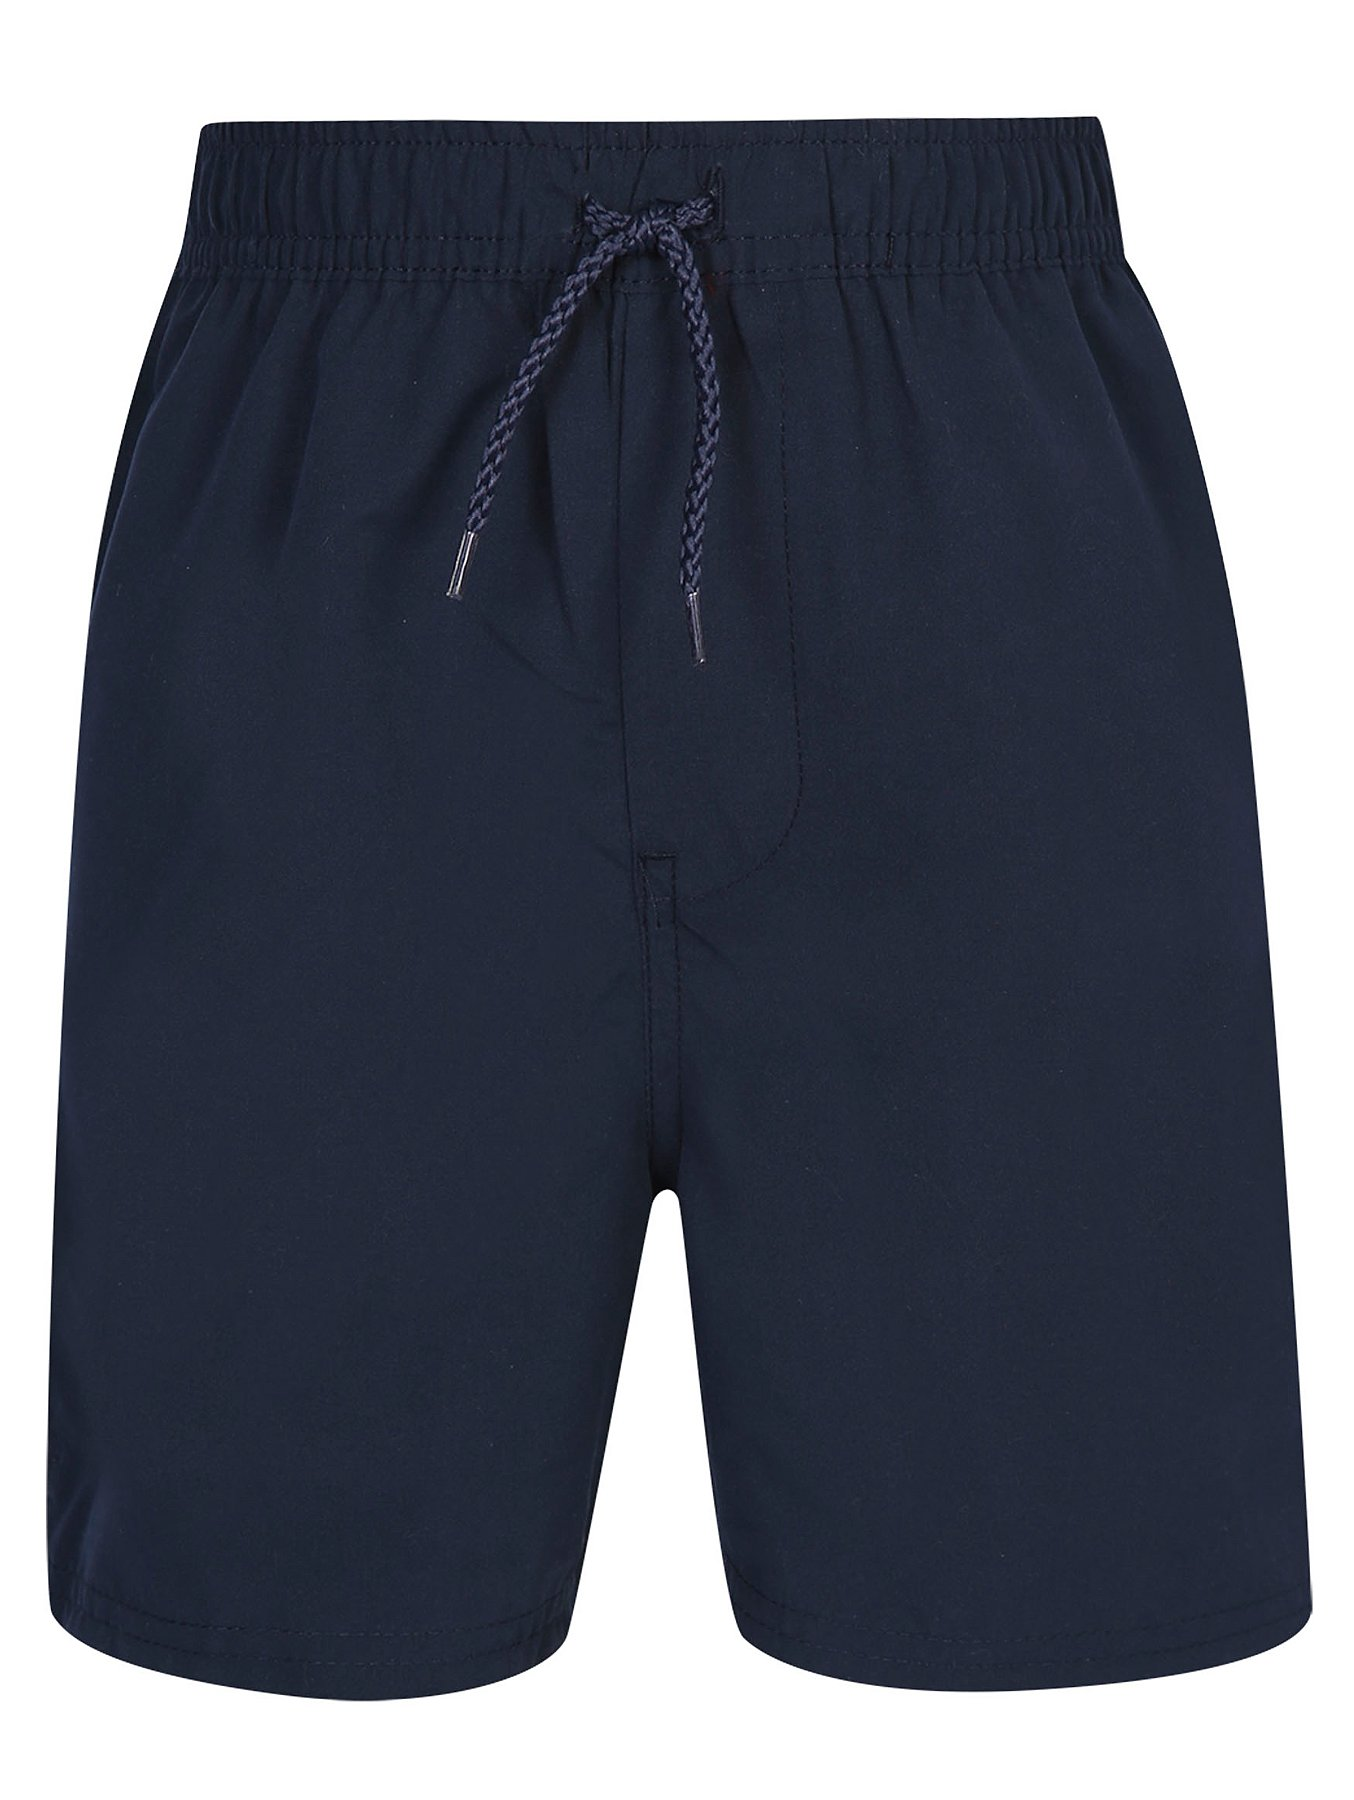 54ff0f6738 Boys Navy School Swim Shorts | School | George